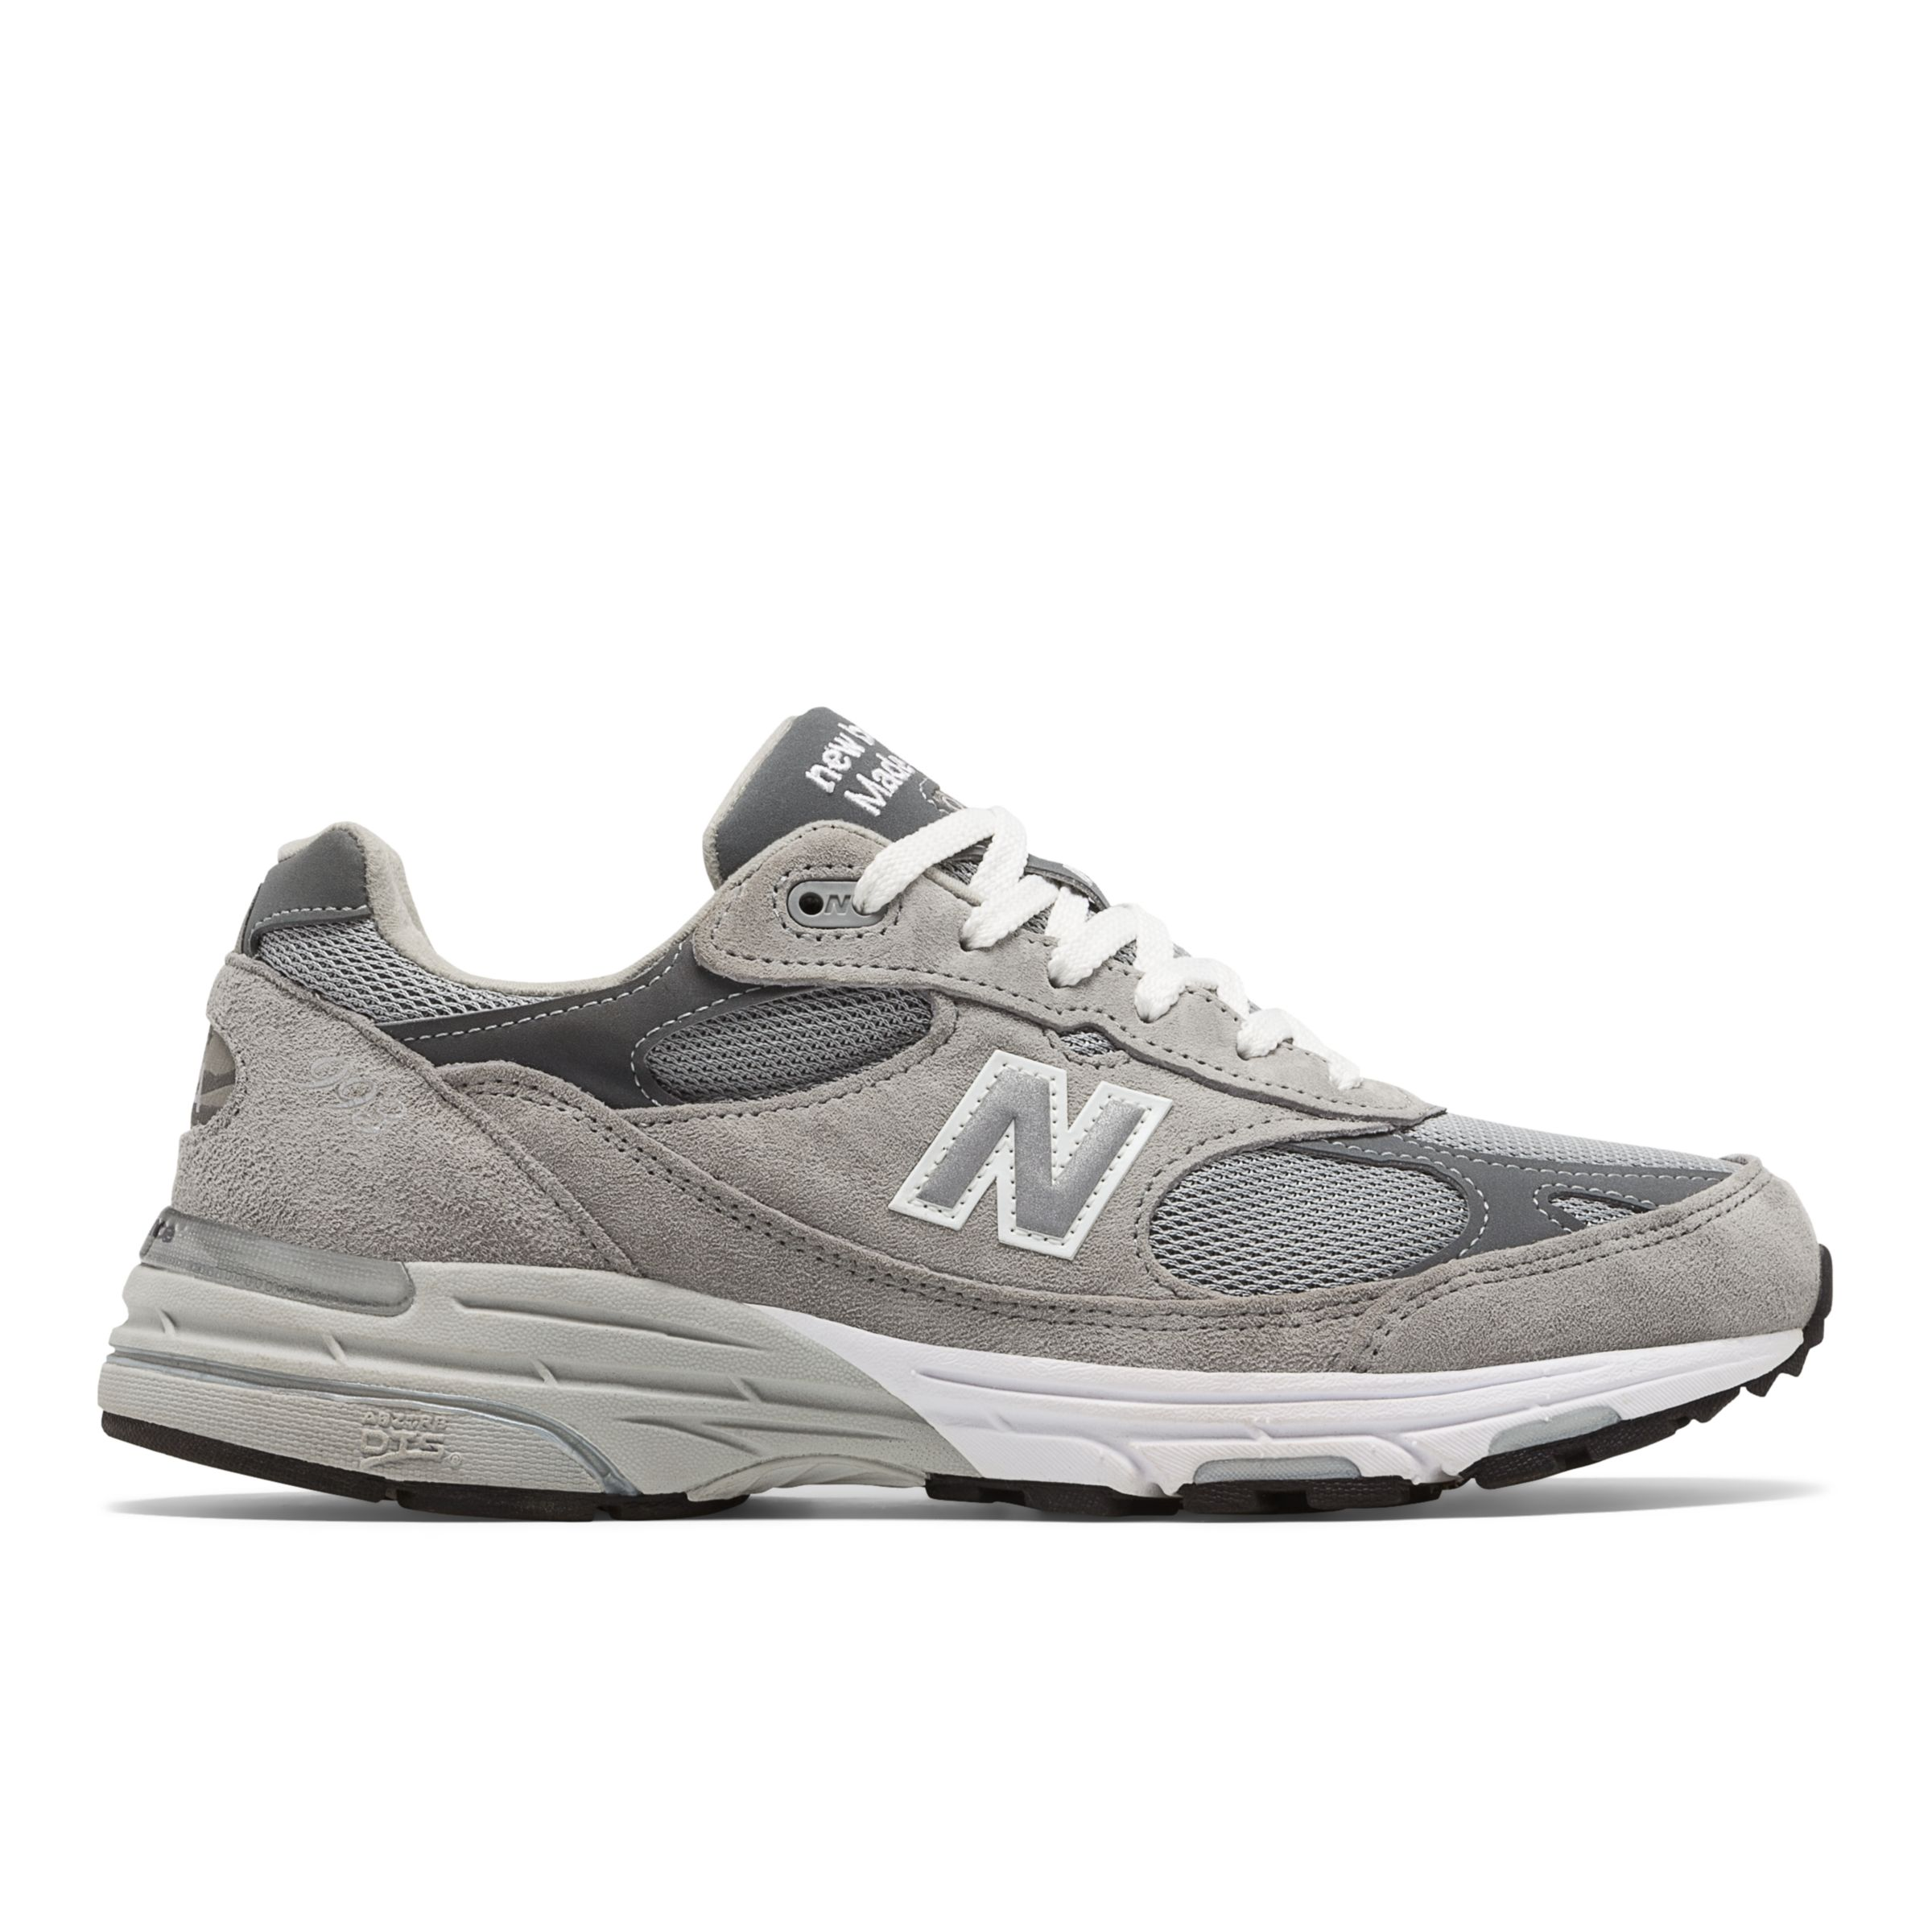 New Balance Mens Classics 993 Stability Running Shoes Grey